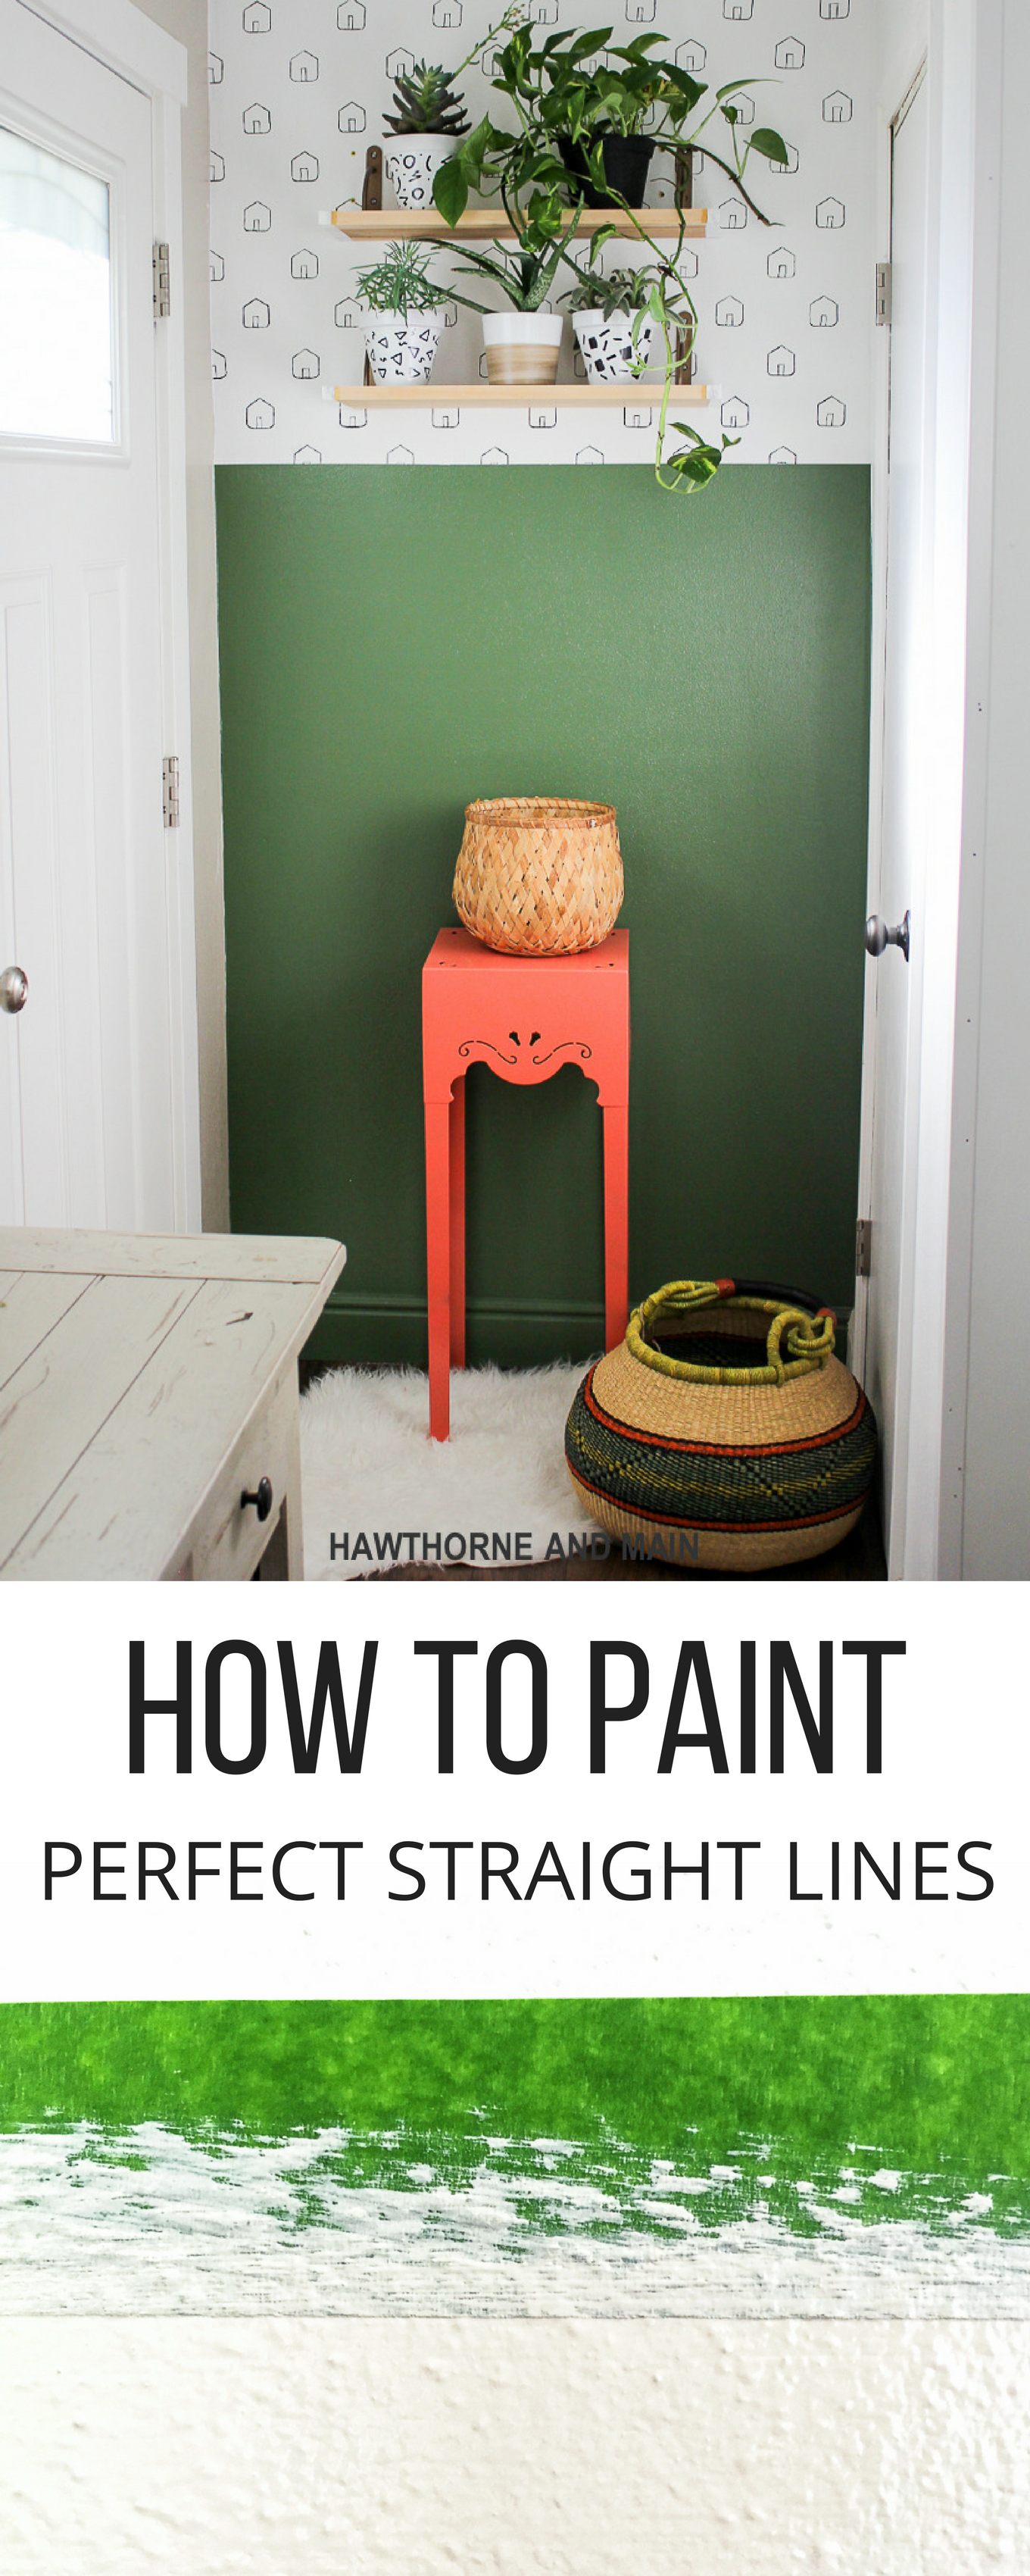 how-to-paint-perfect-straight-lines